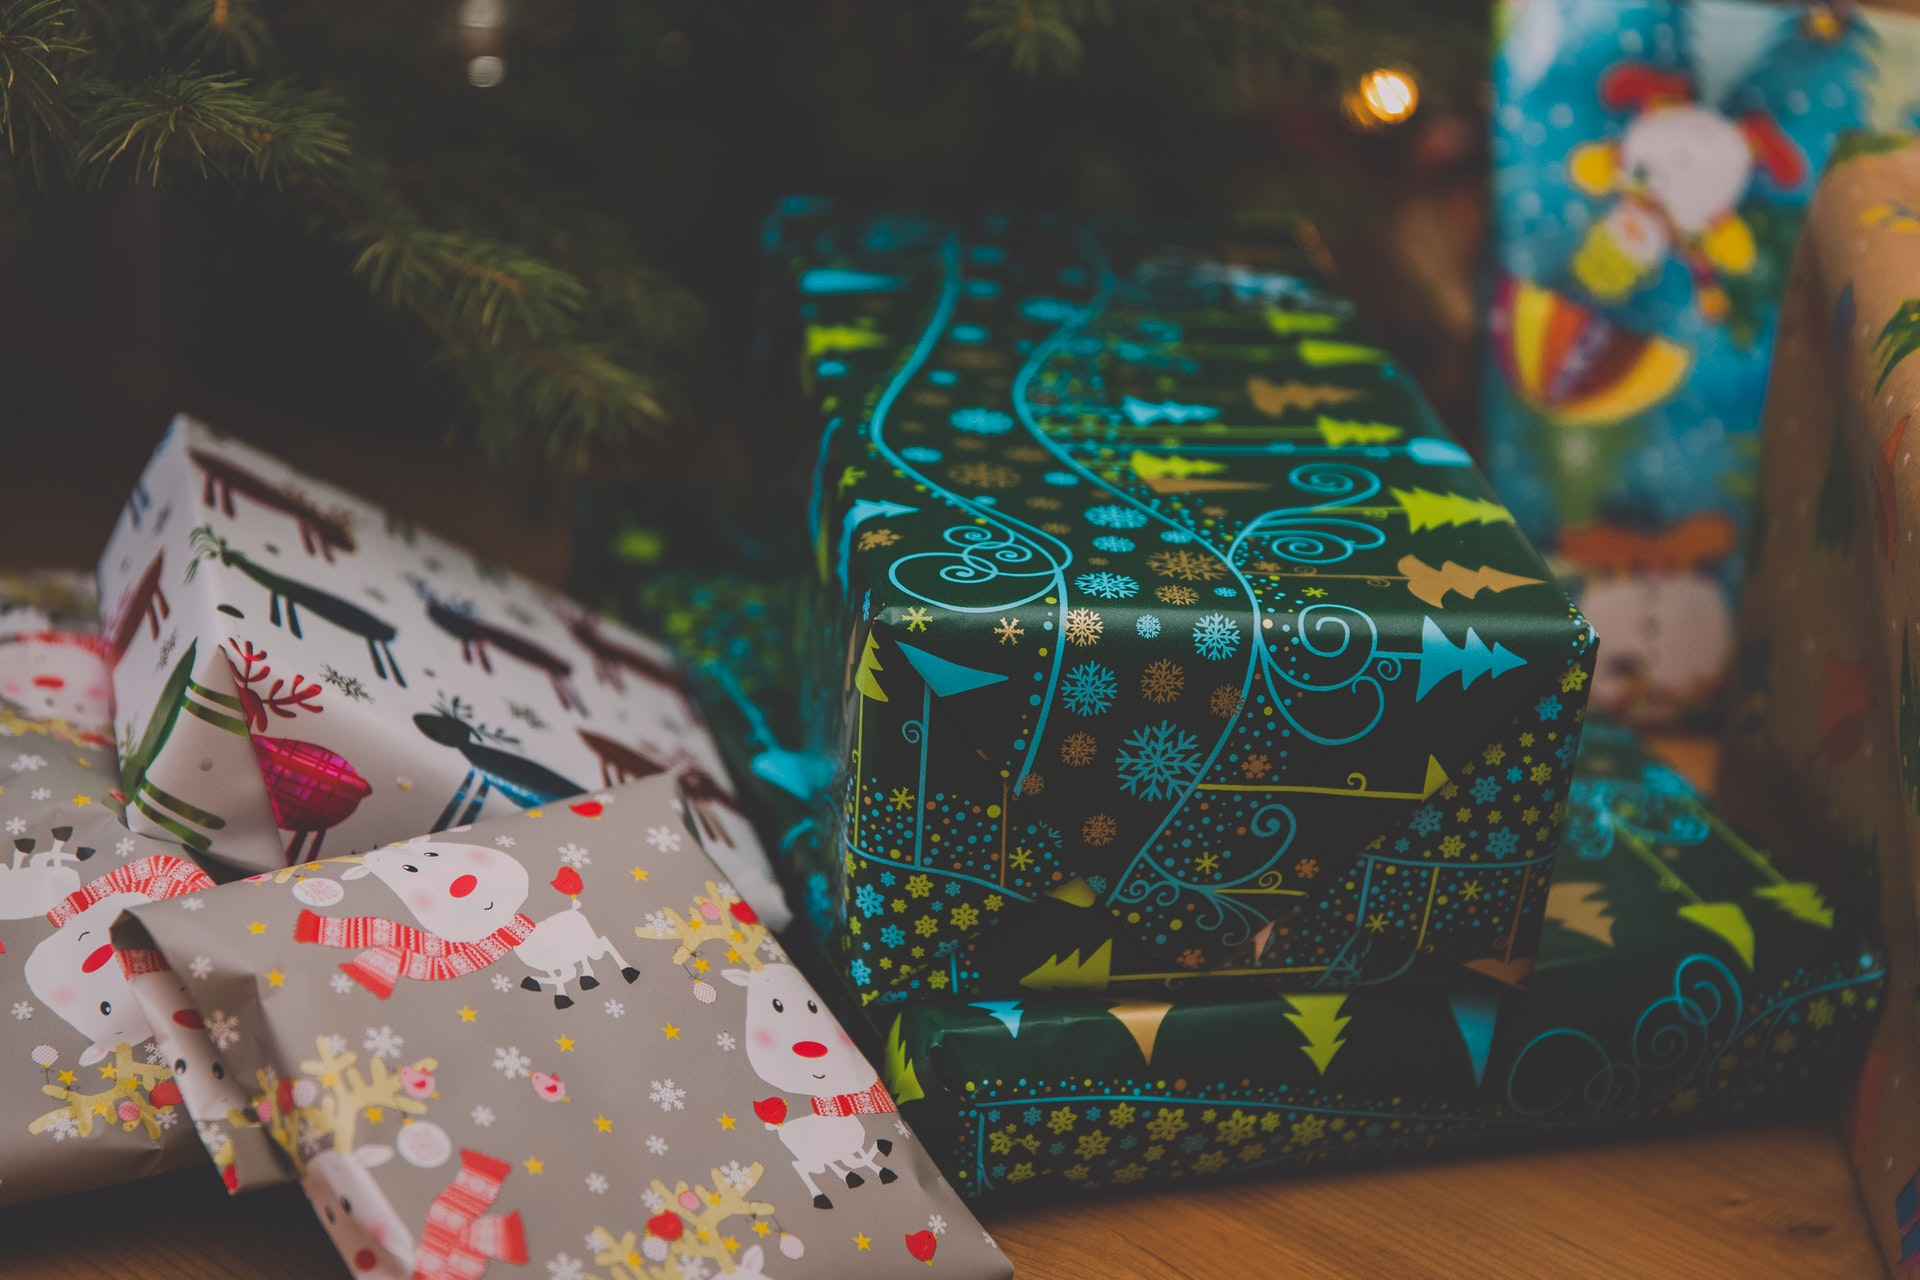 Christmas presents under the tree during the festive season